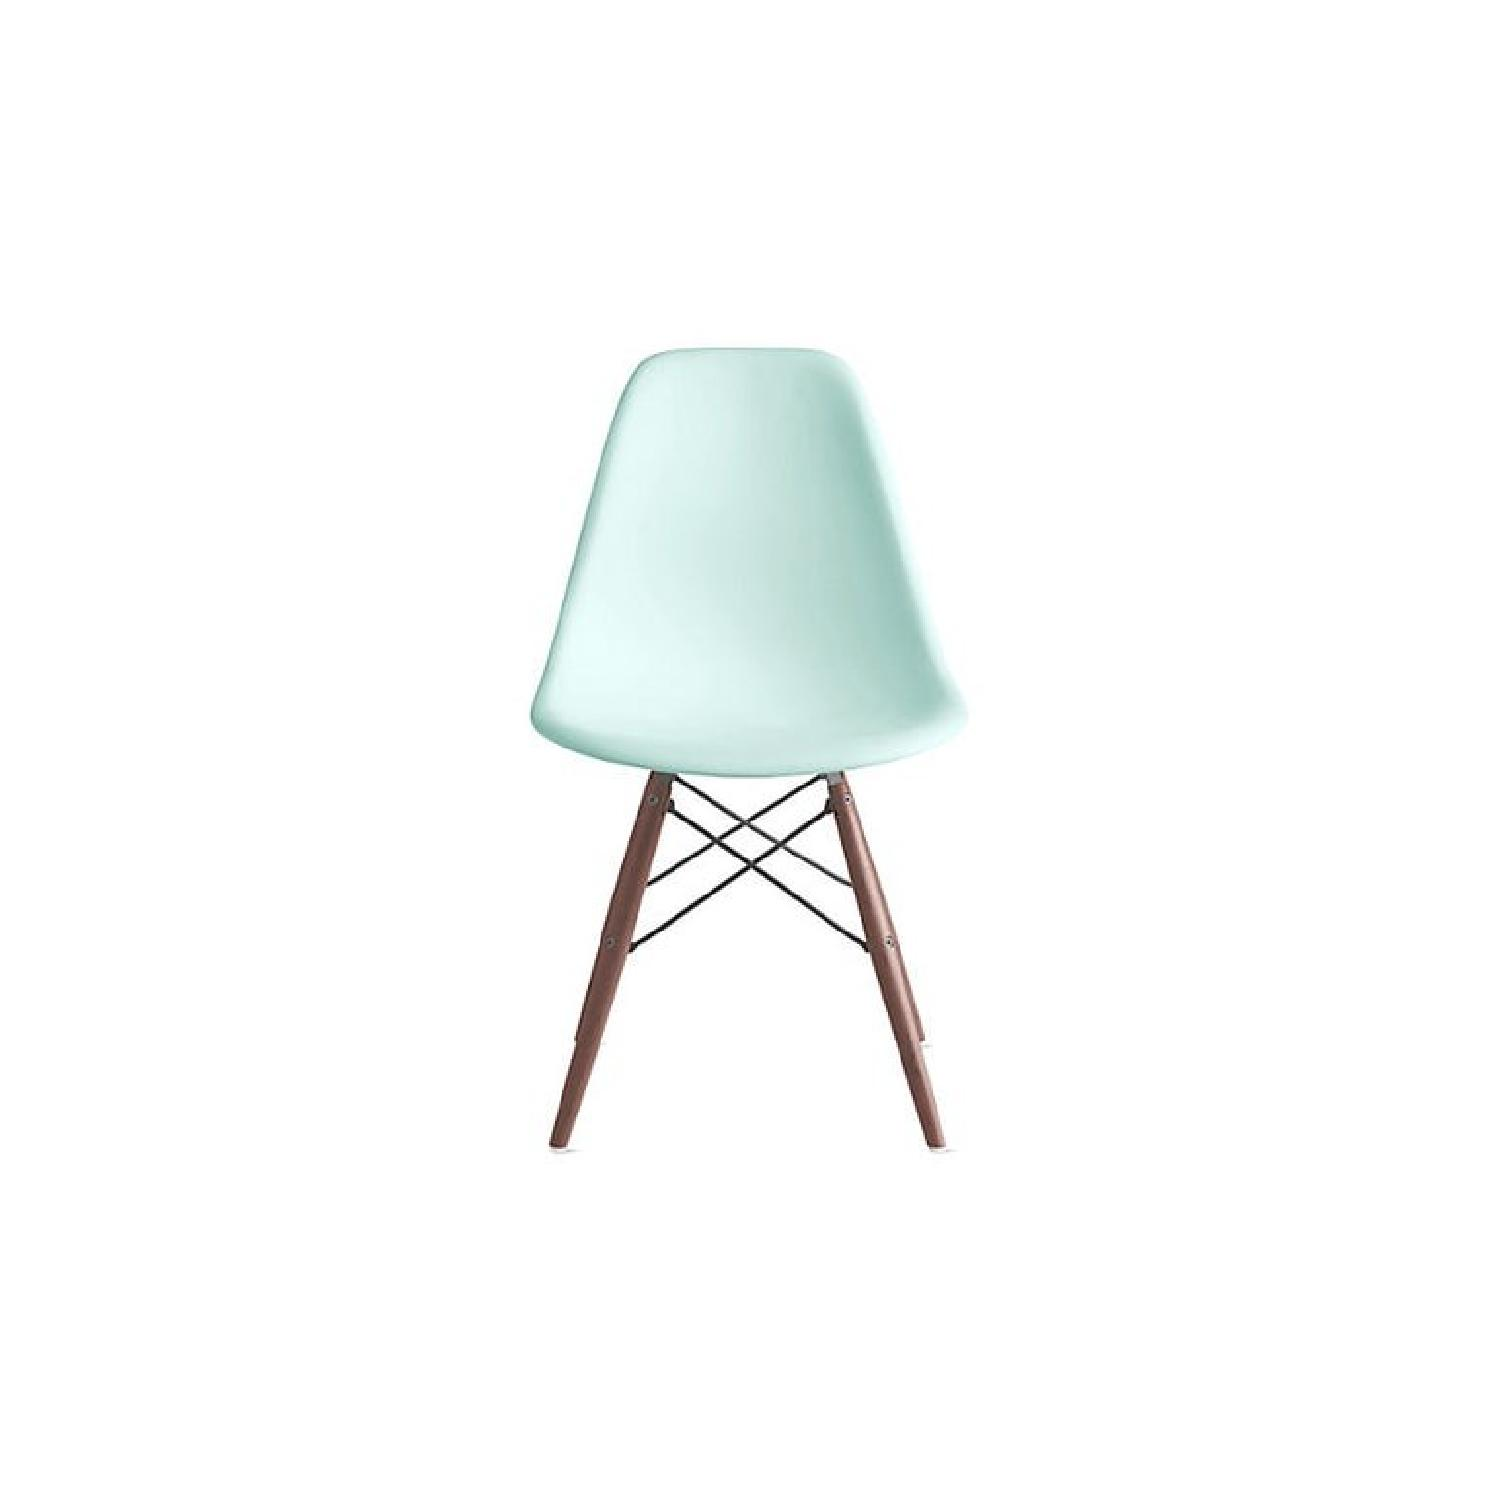 Eames Molded Plastic DSW Dowel-Leg Side Chair - image-4